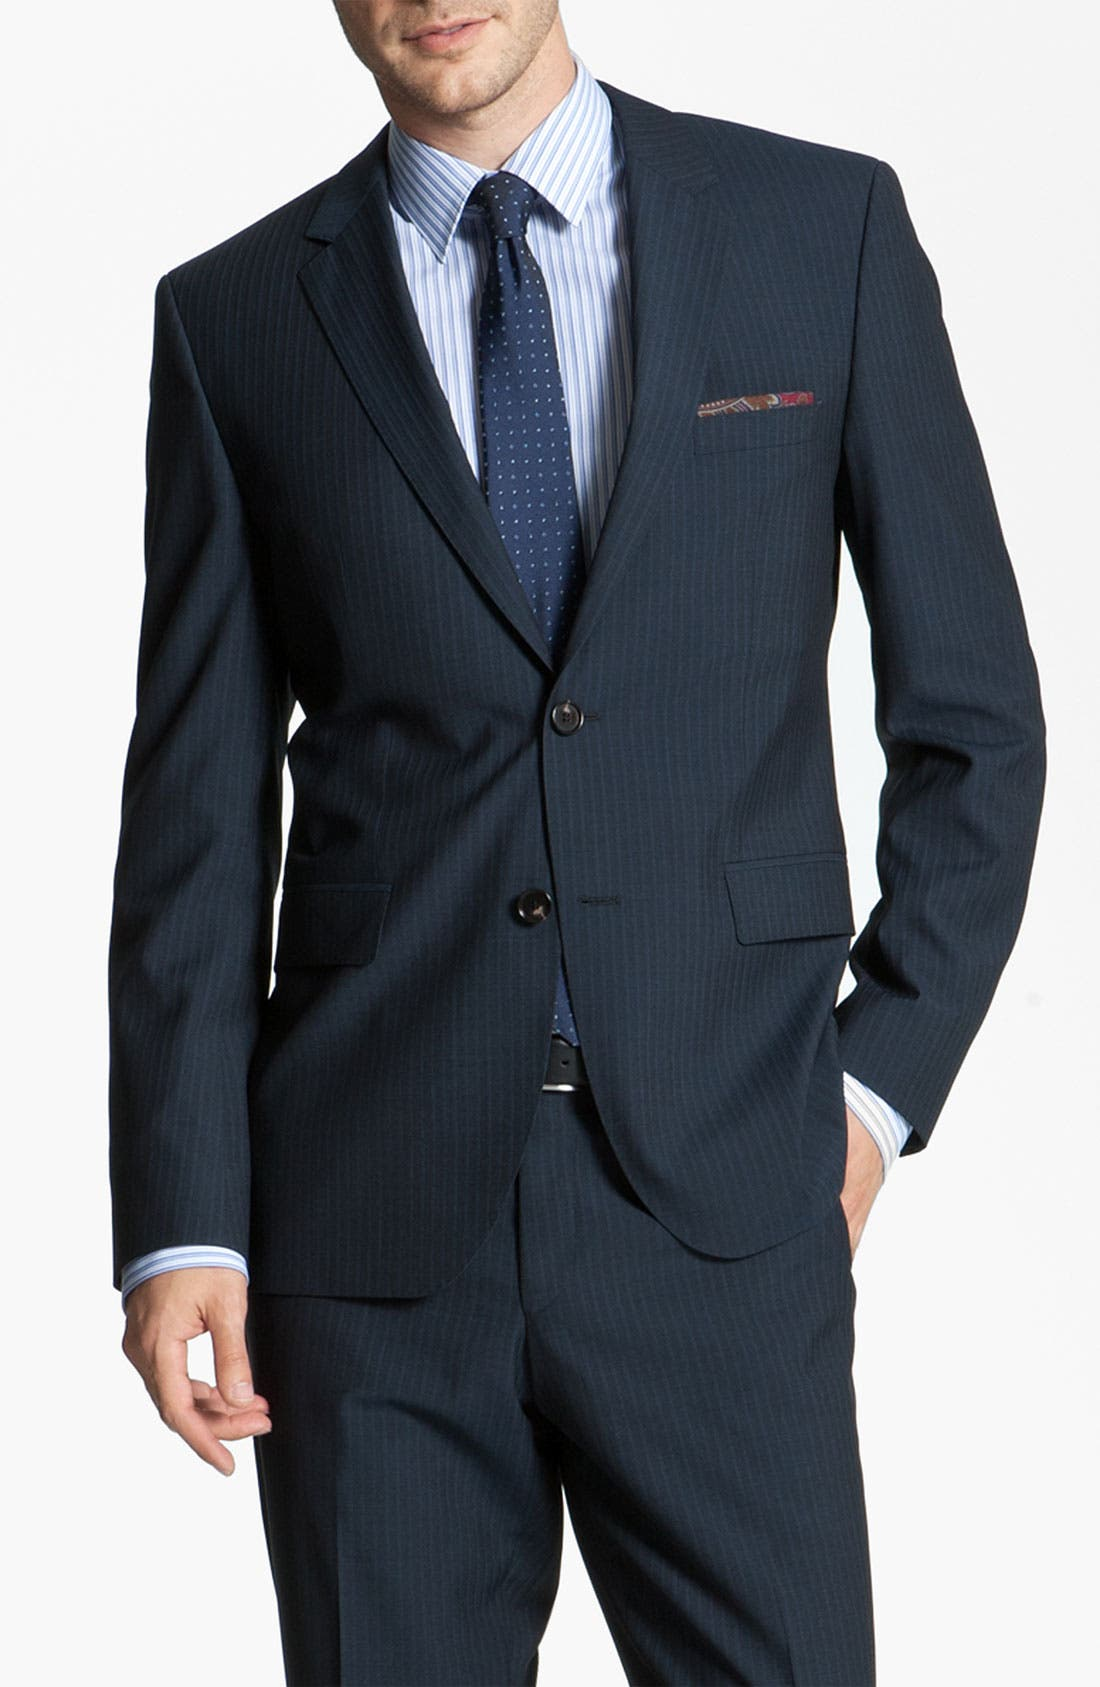 Alternate Image 1 Selected - BOSS Black 'James/Sharp' Trim Fit Suit